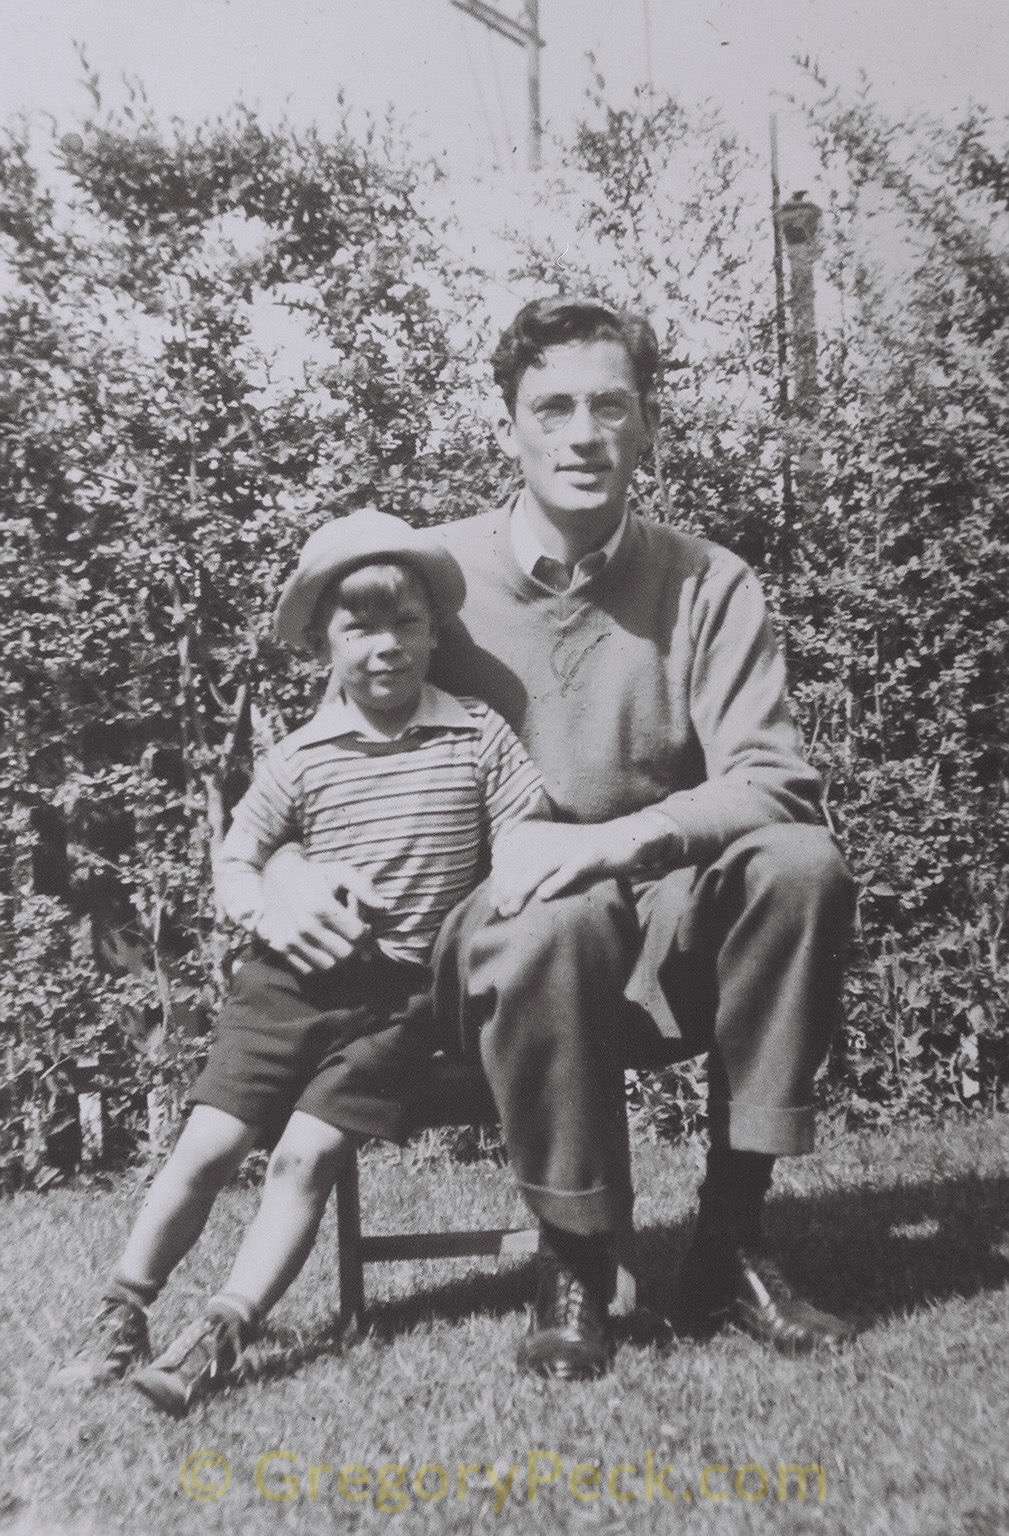 Greg with brother Don, 1938